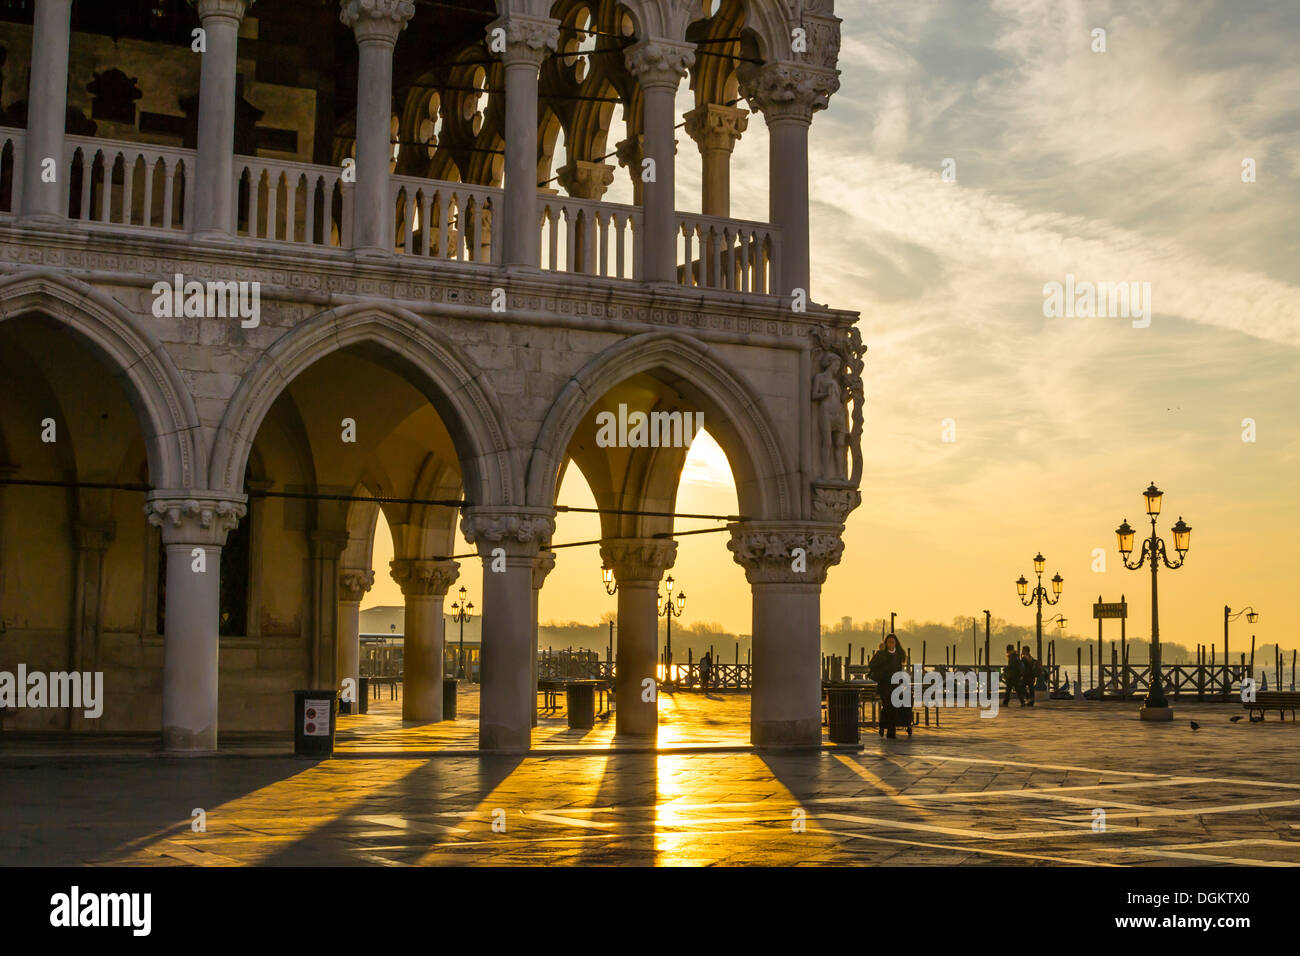 Morning light and shadows of Doge's Palace in Venice. - Stock Image